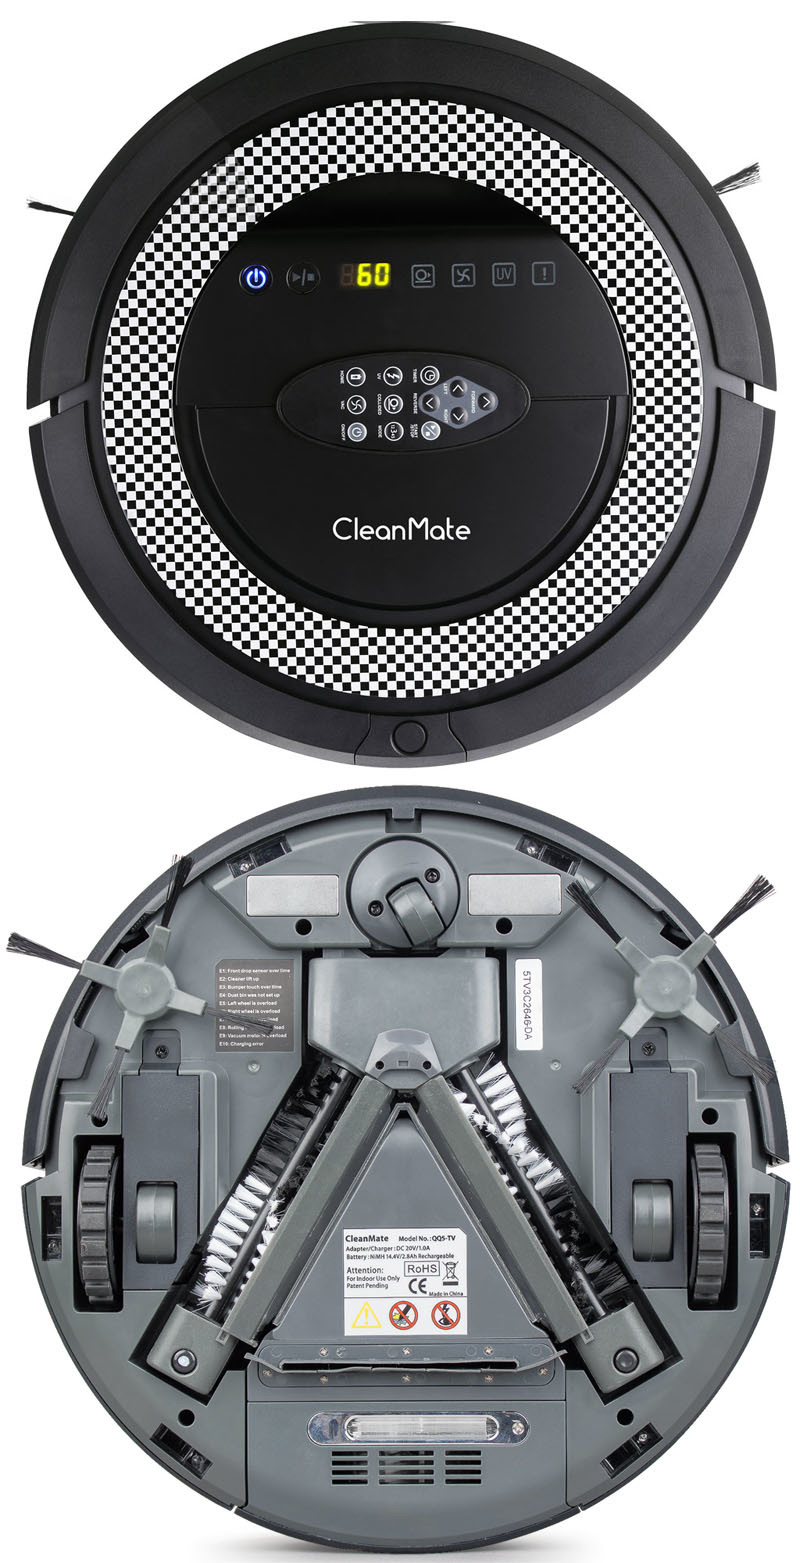 Newest Automatic Cleaner with UV Light, Auto-Recharging, Virtual Wall, Robot Vacuum Cleaner